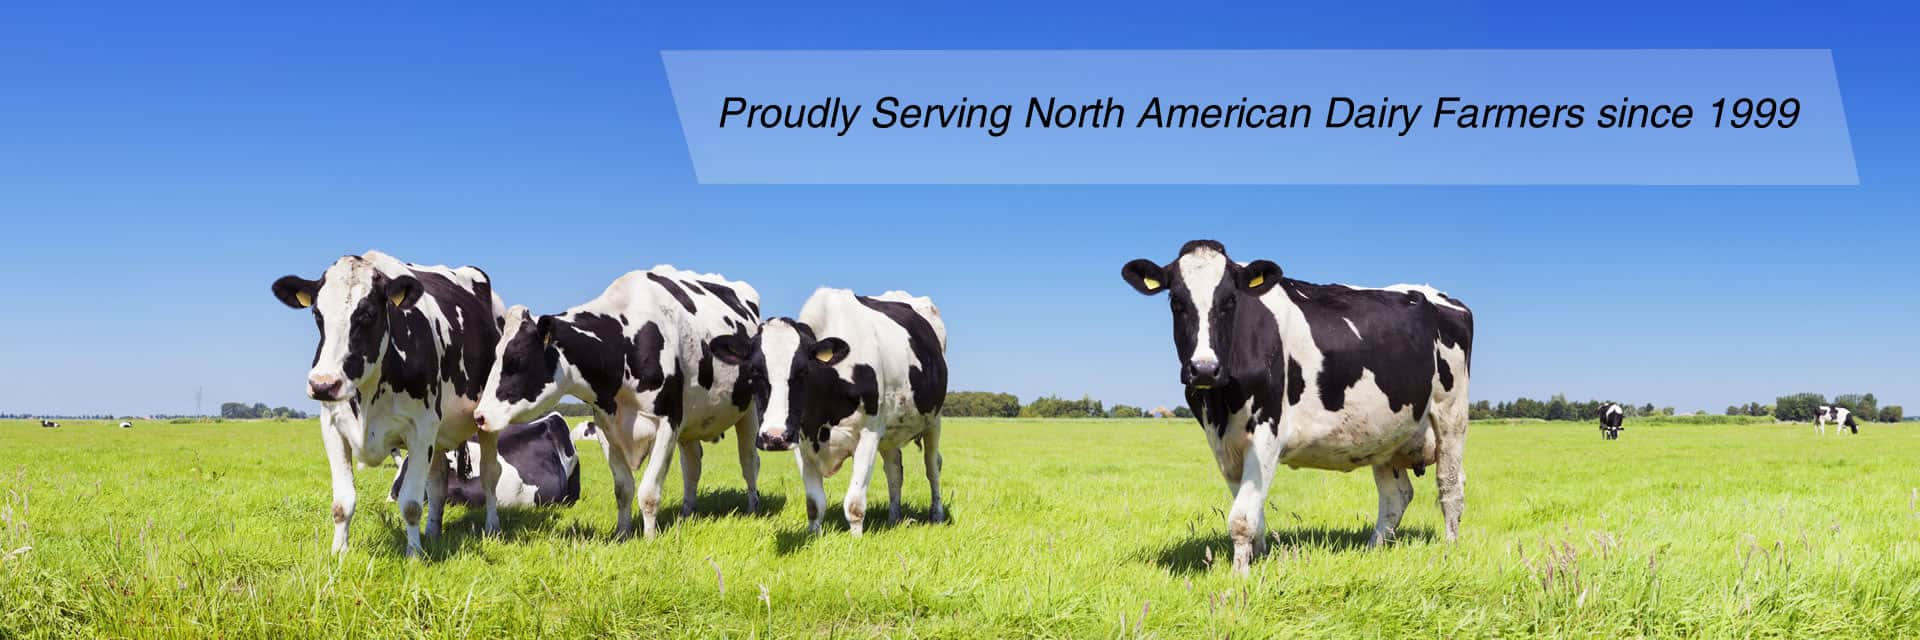 Field with dairy cows and blue skies | Proudly Serving North American Dairy Farmers since 1999